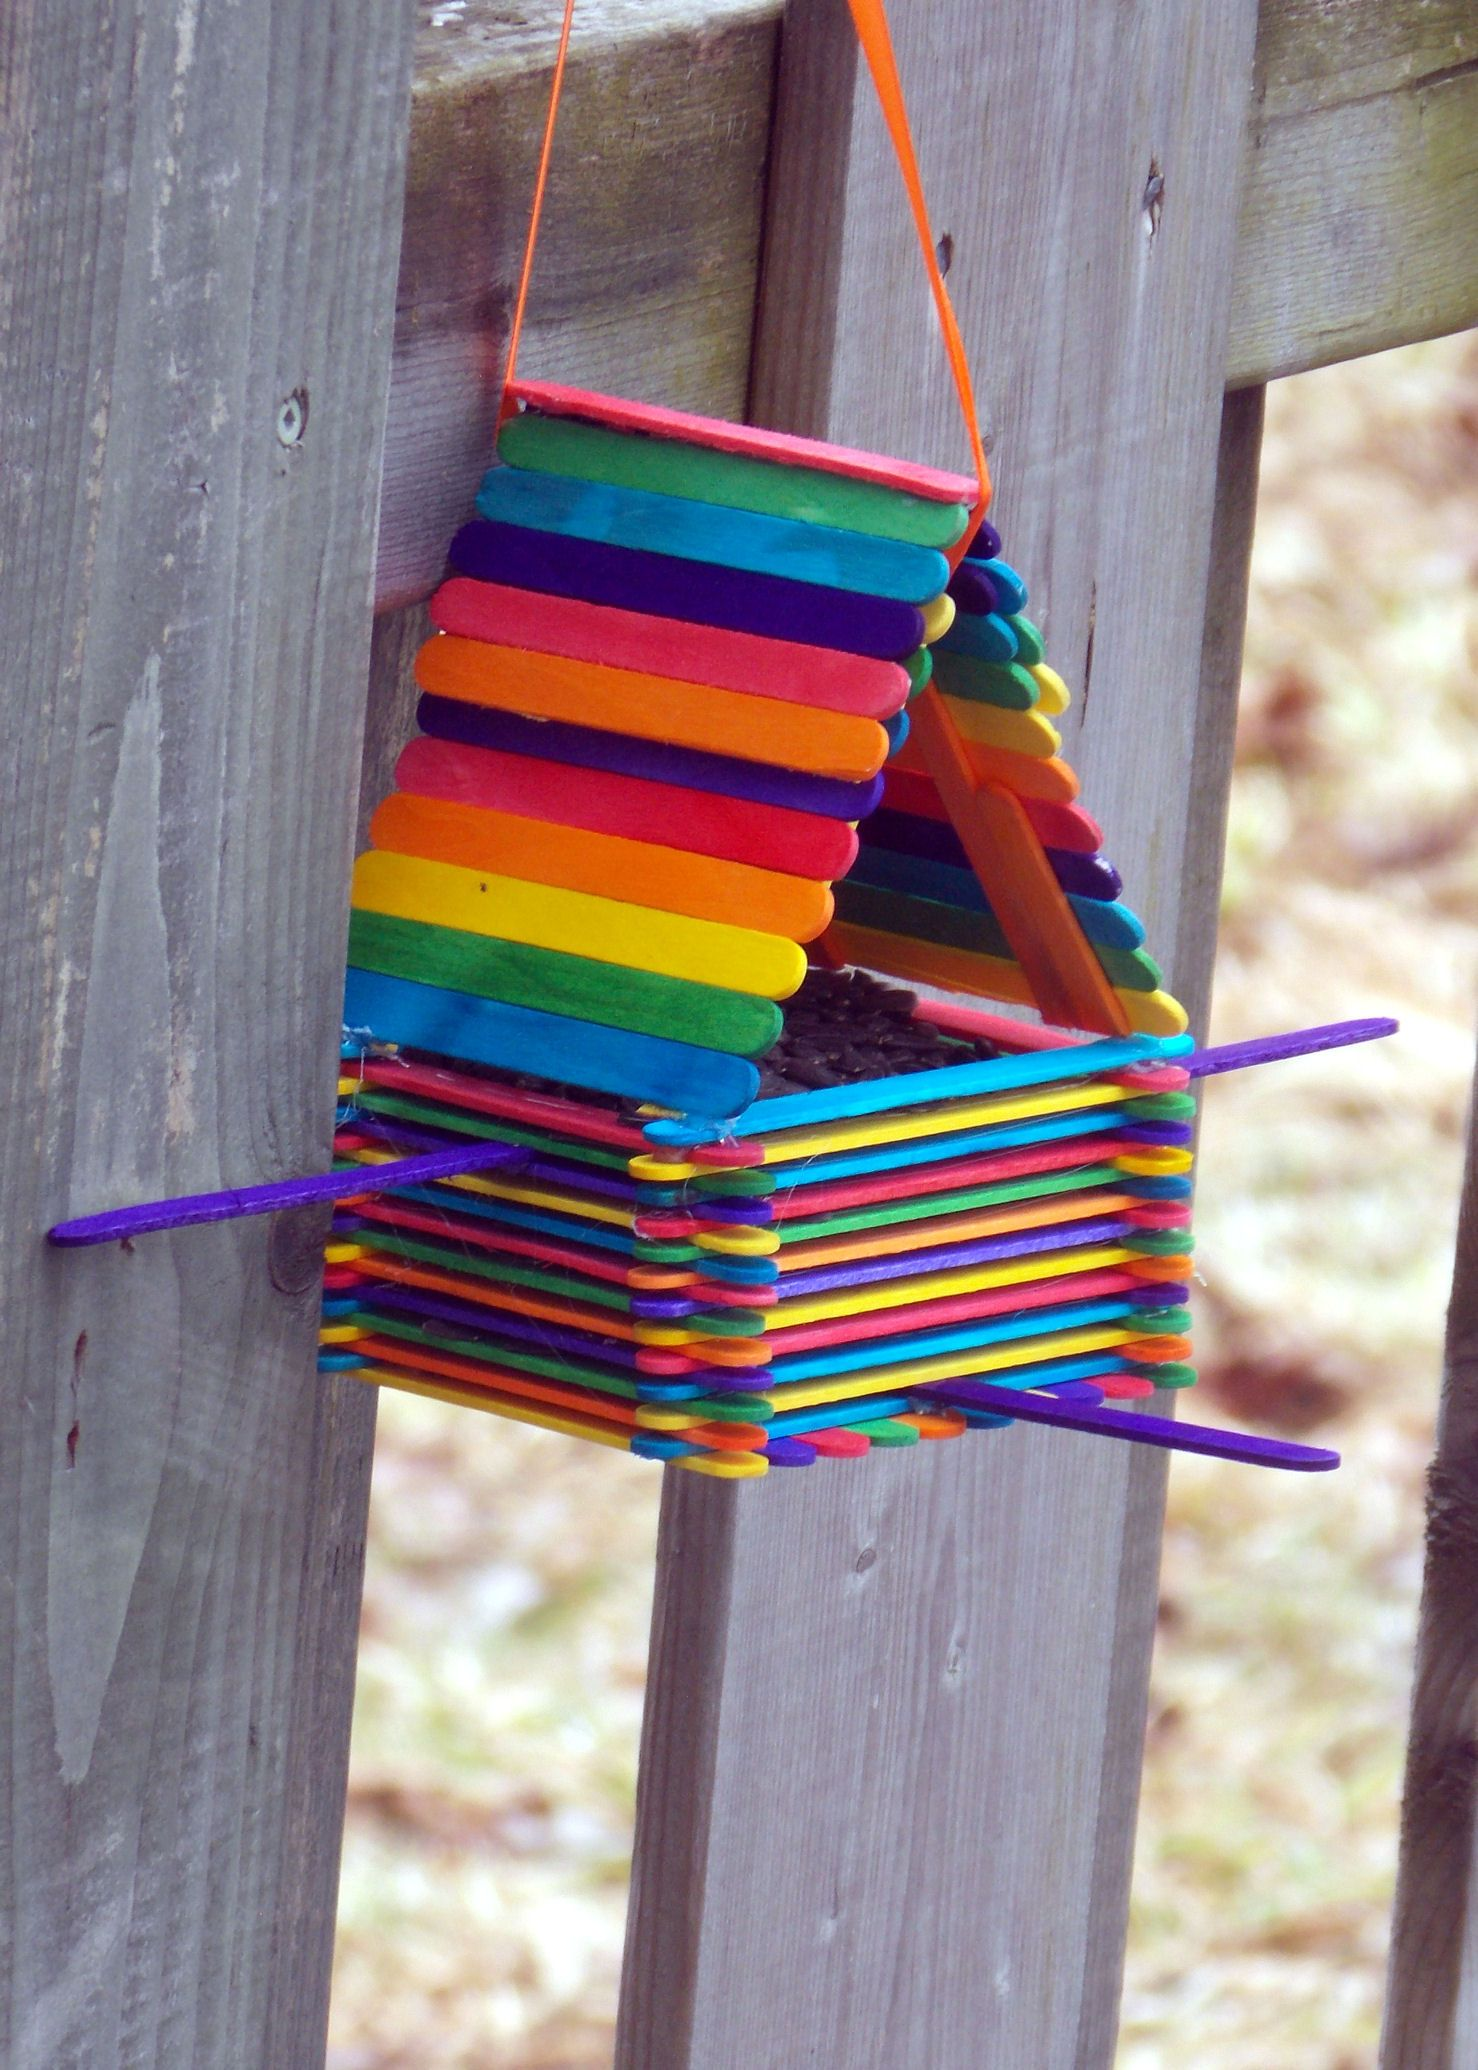 Popsicle stick bird house 2 easy birdhouse made out of What to make out of popsicle sticks